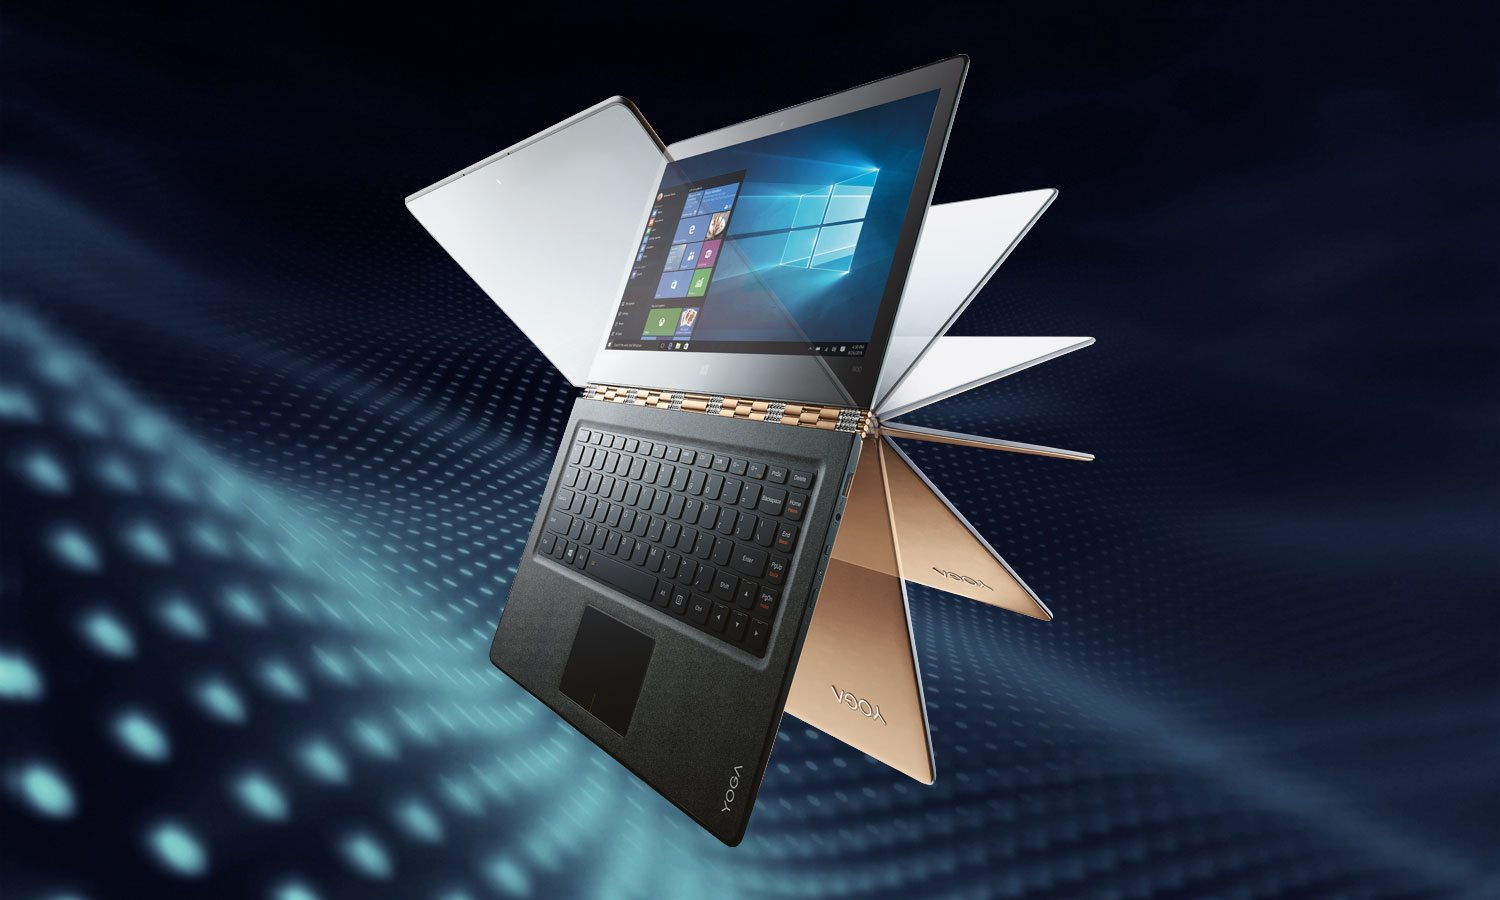 Lenovo Thinkcentre M Series Drivers For Windows 10